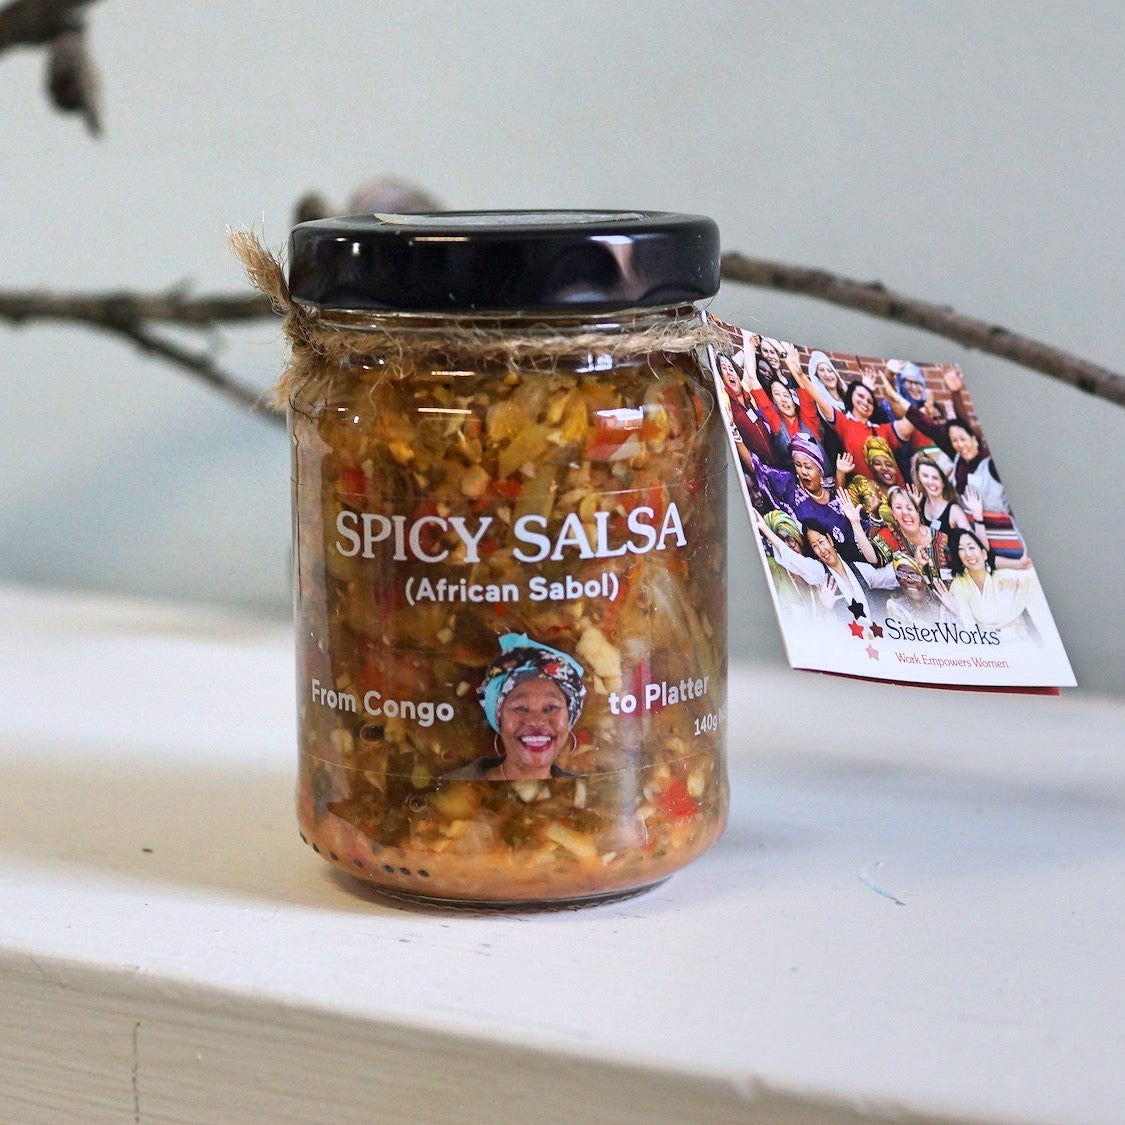 Sisterworks ethically handmade vegan spicy salsa - African Sabol - Fair Trade, Handmade, Ethical Gifts and Homewares at ONLY JUST